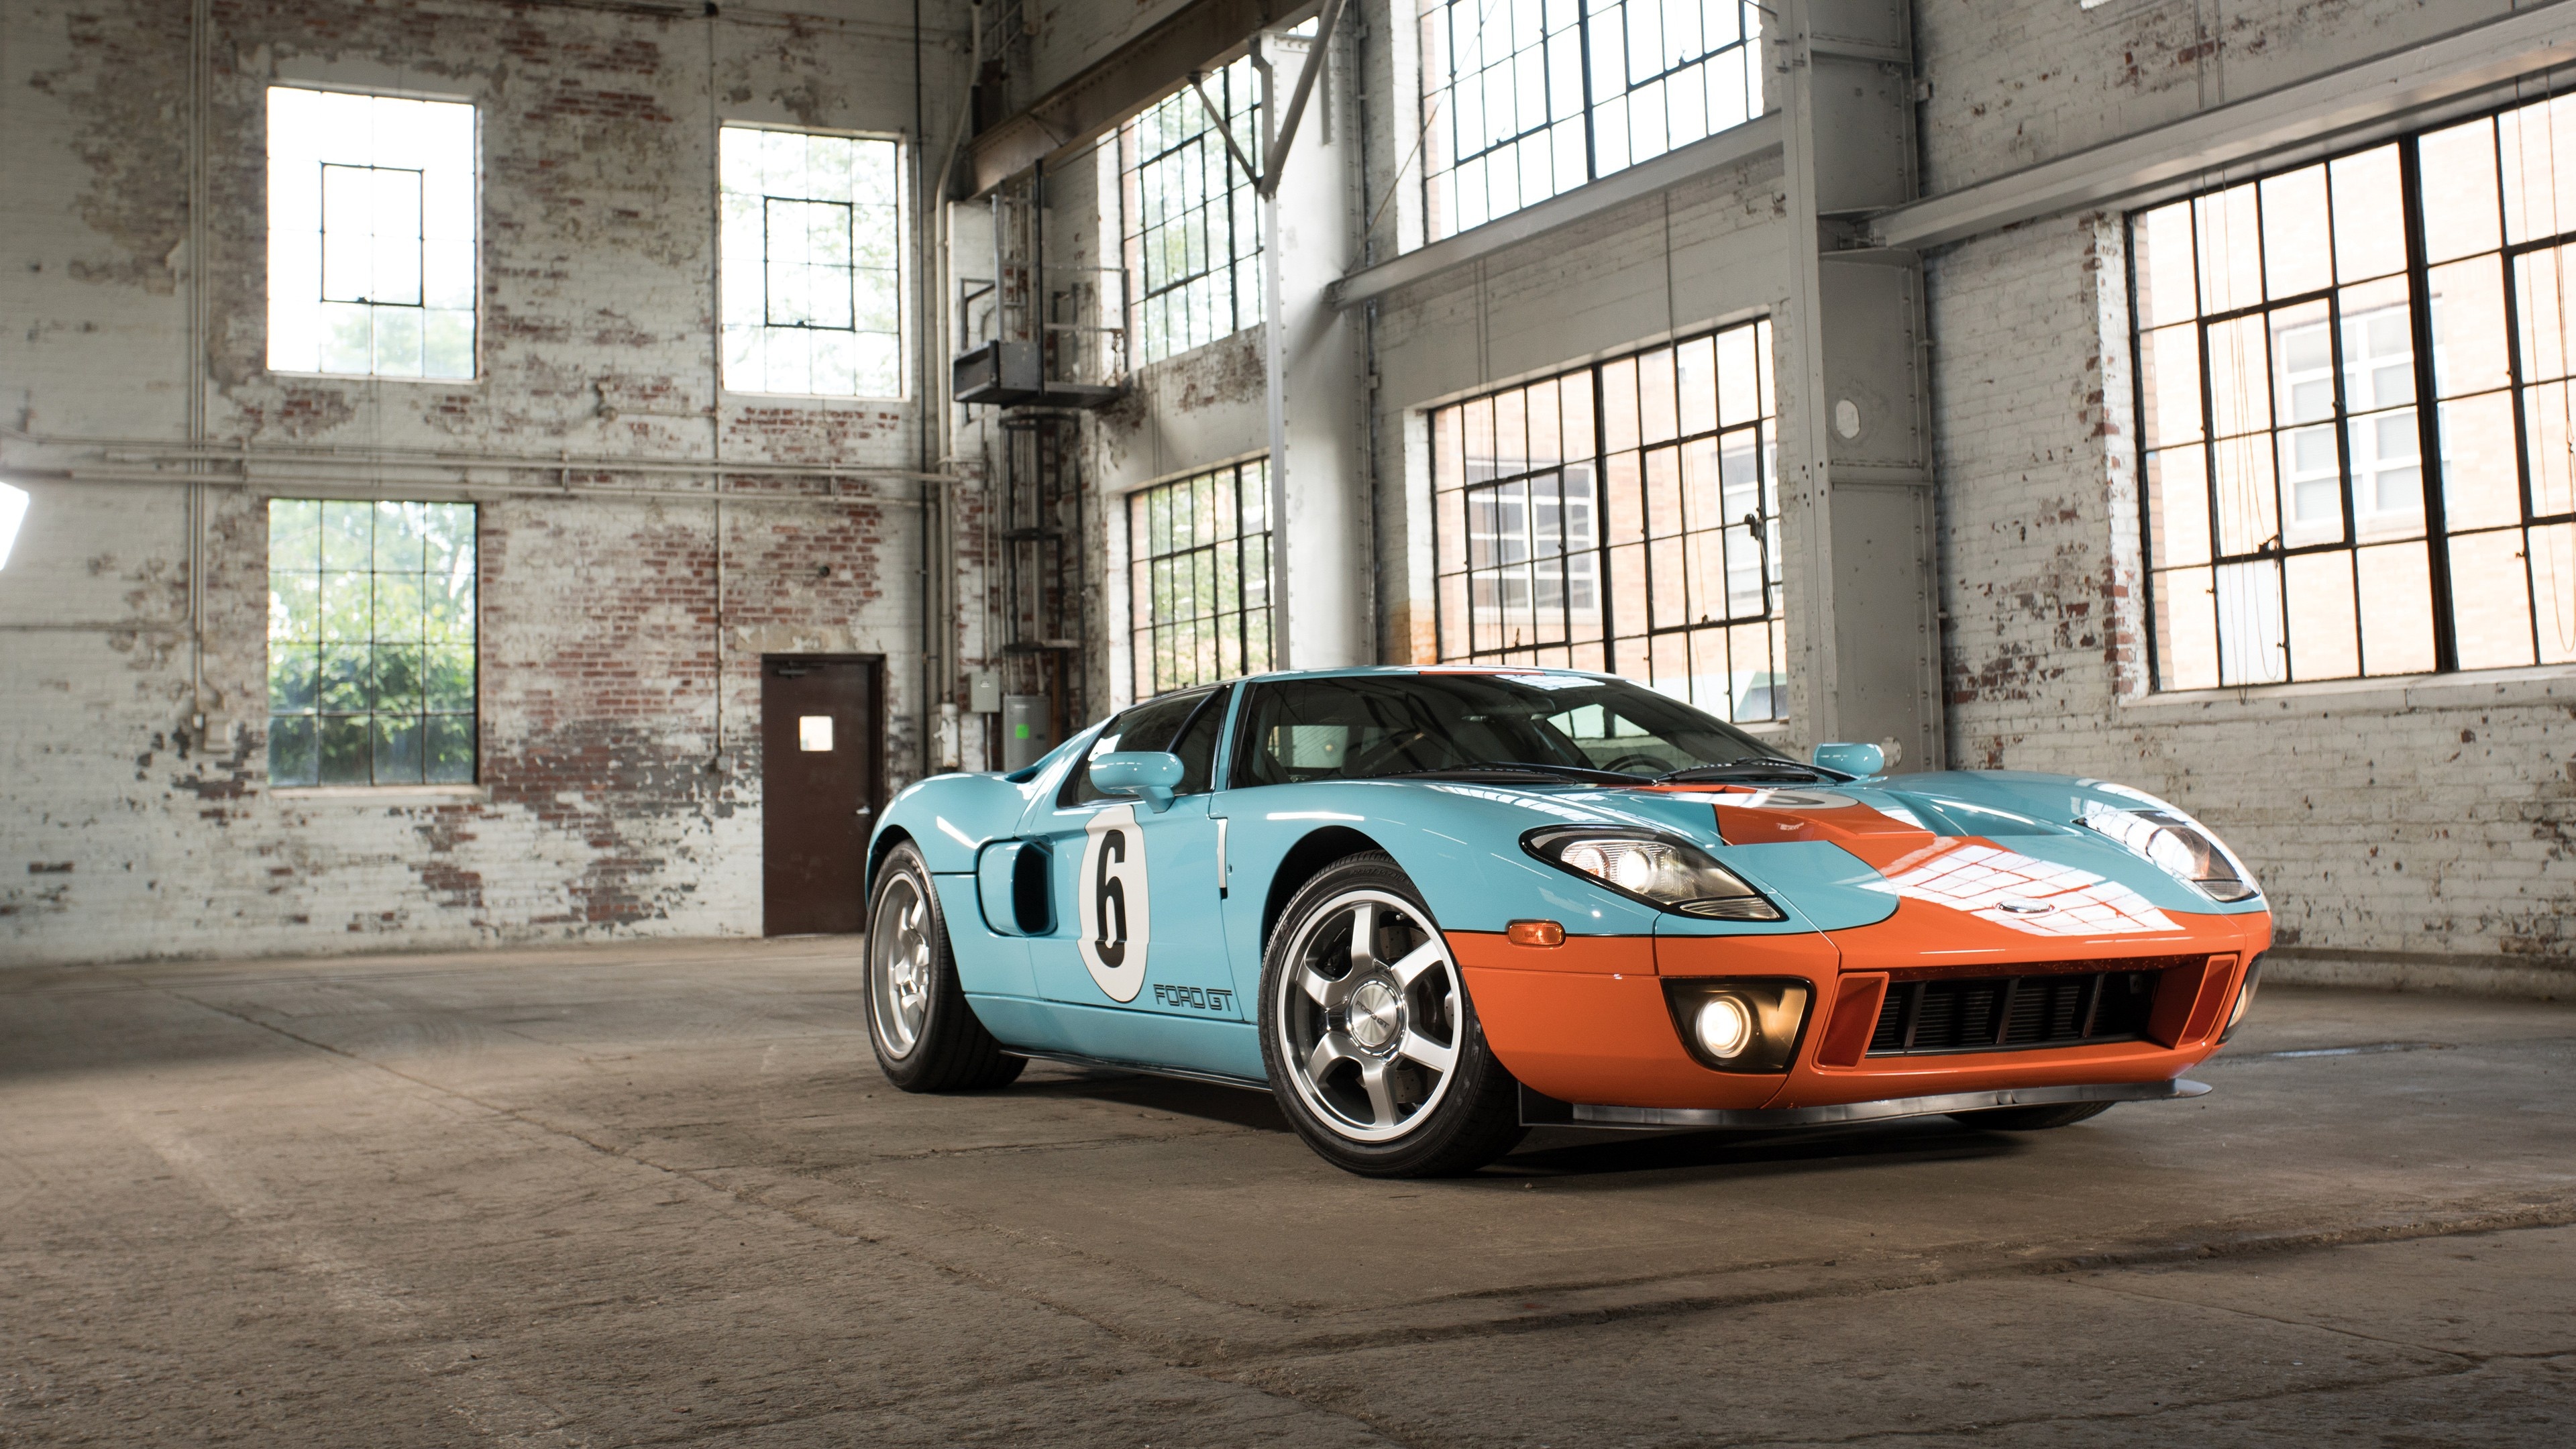 Eagle Wallpaper Iphone X 2006 Ford Gt Heritage Edition Wallpaper Hd Car